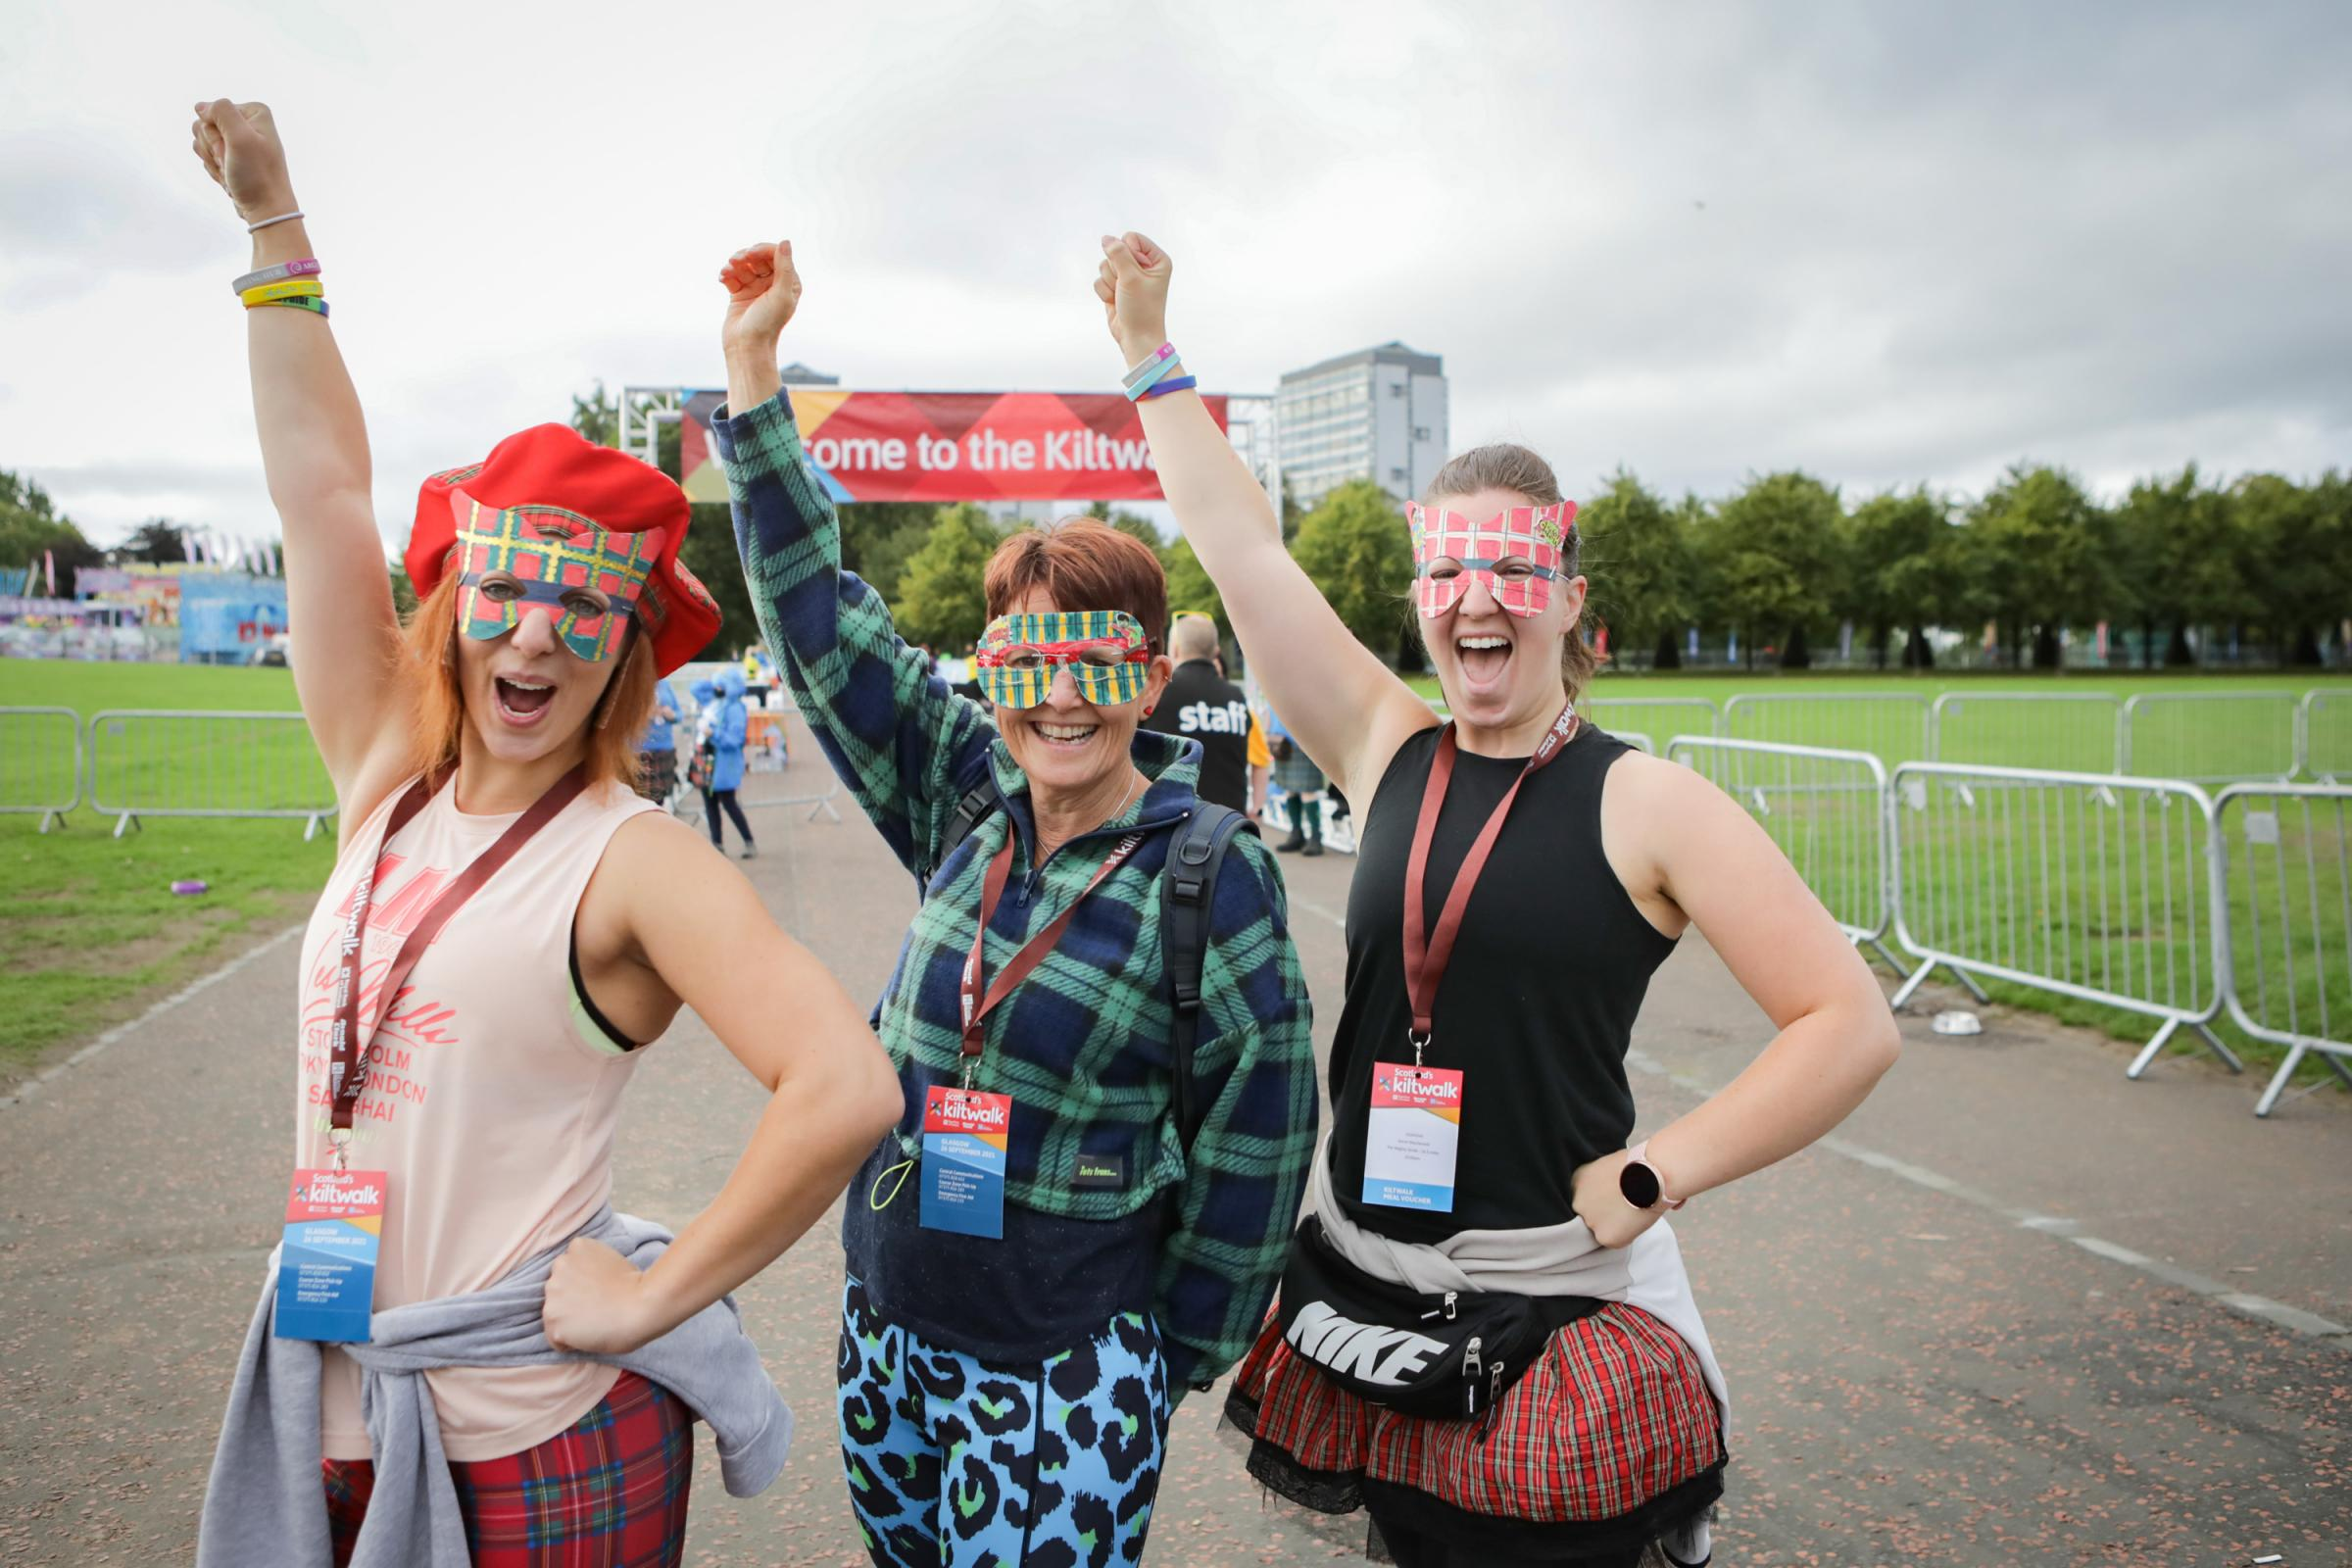 Scotland's Kiltwalk takes place for the first time in two years